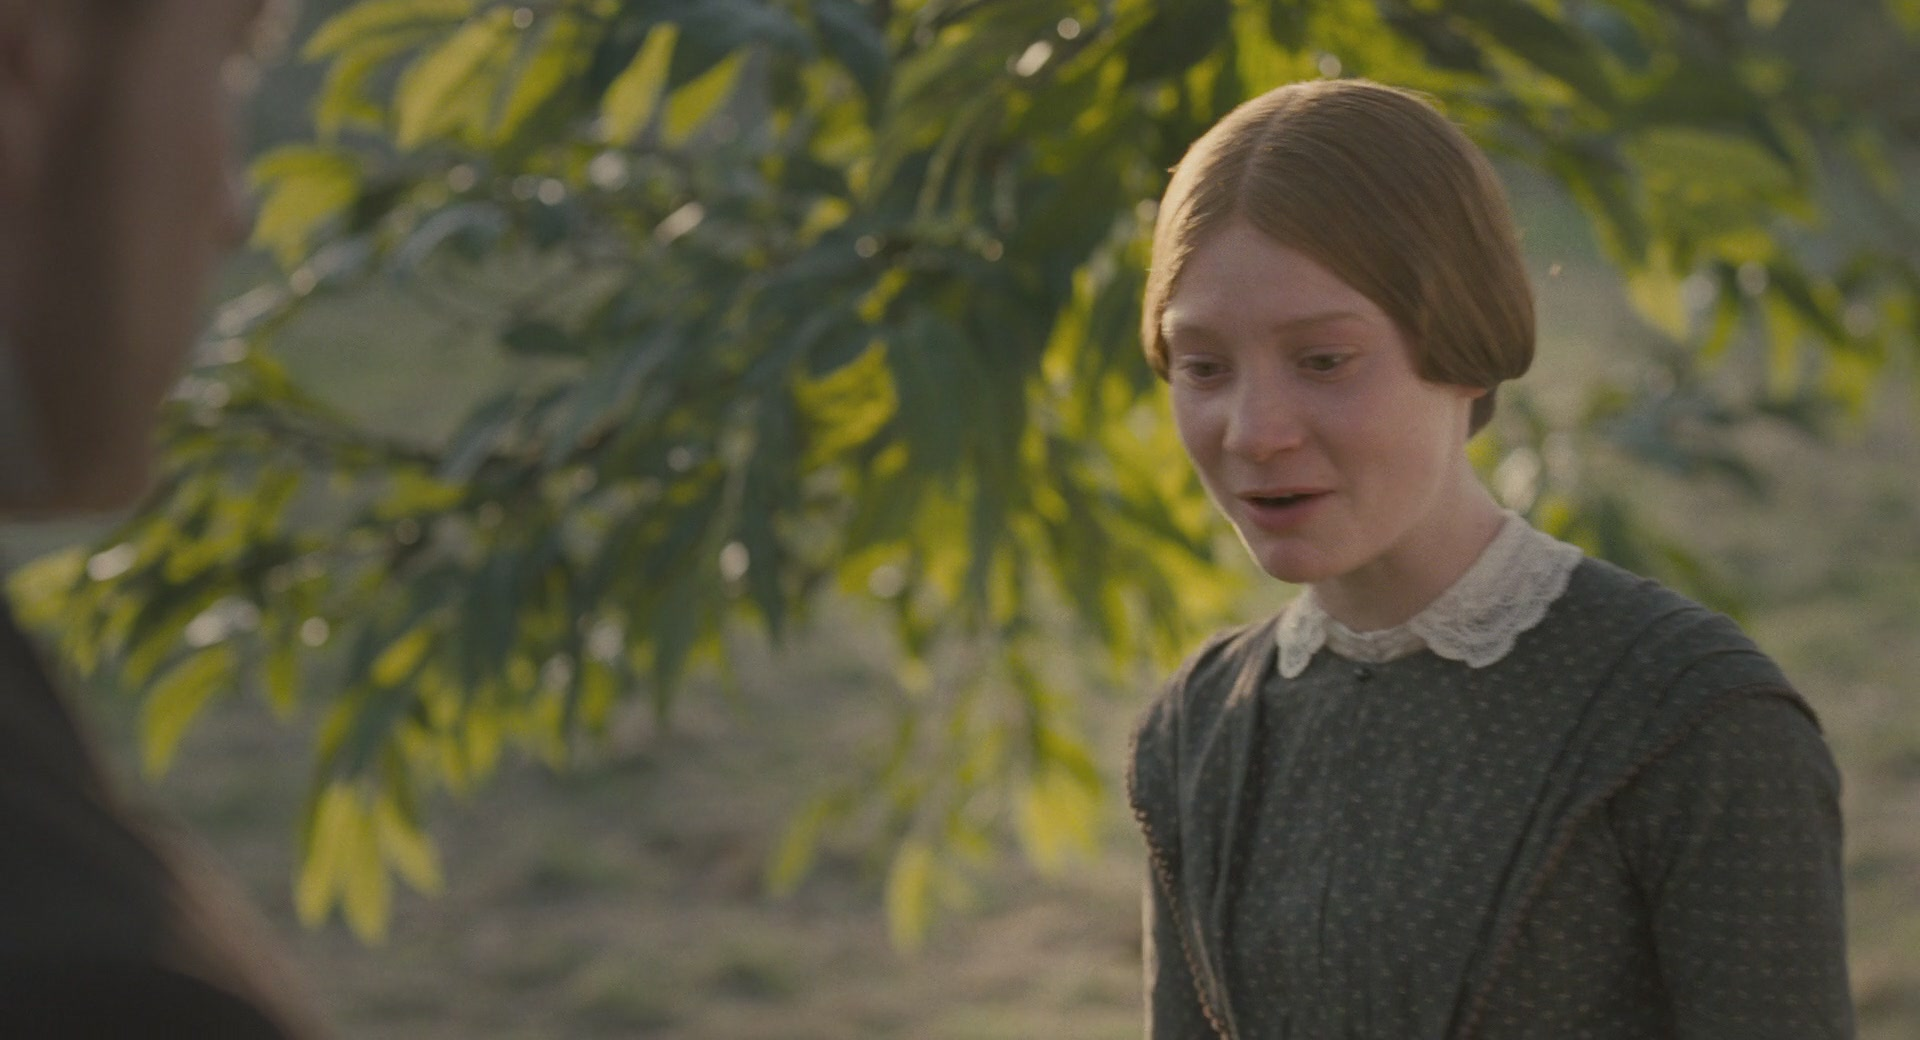 jane eyre exam When jane eyre was published in 1847, it was a huge hit it really hit the controversial balance beautifully, being edgy enough to make news, but still mainstream enough to be widely popular.